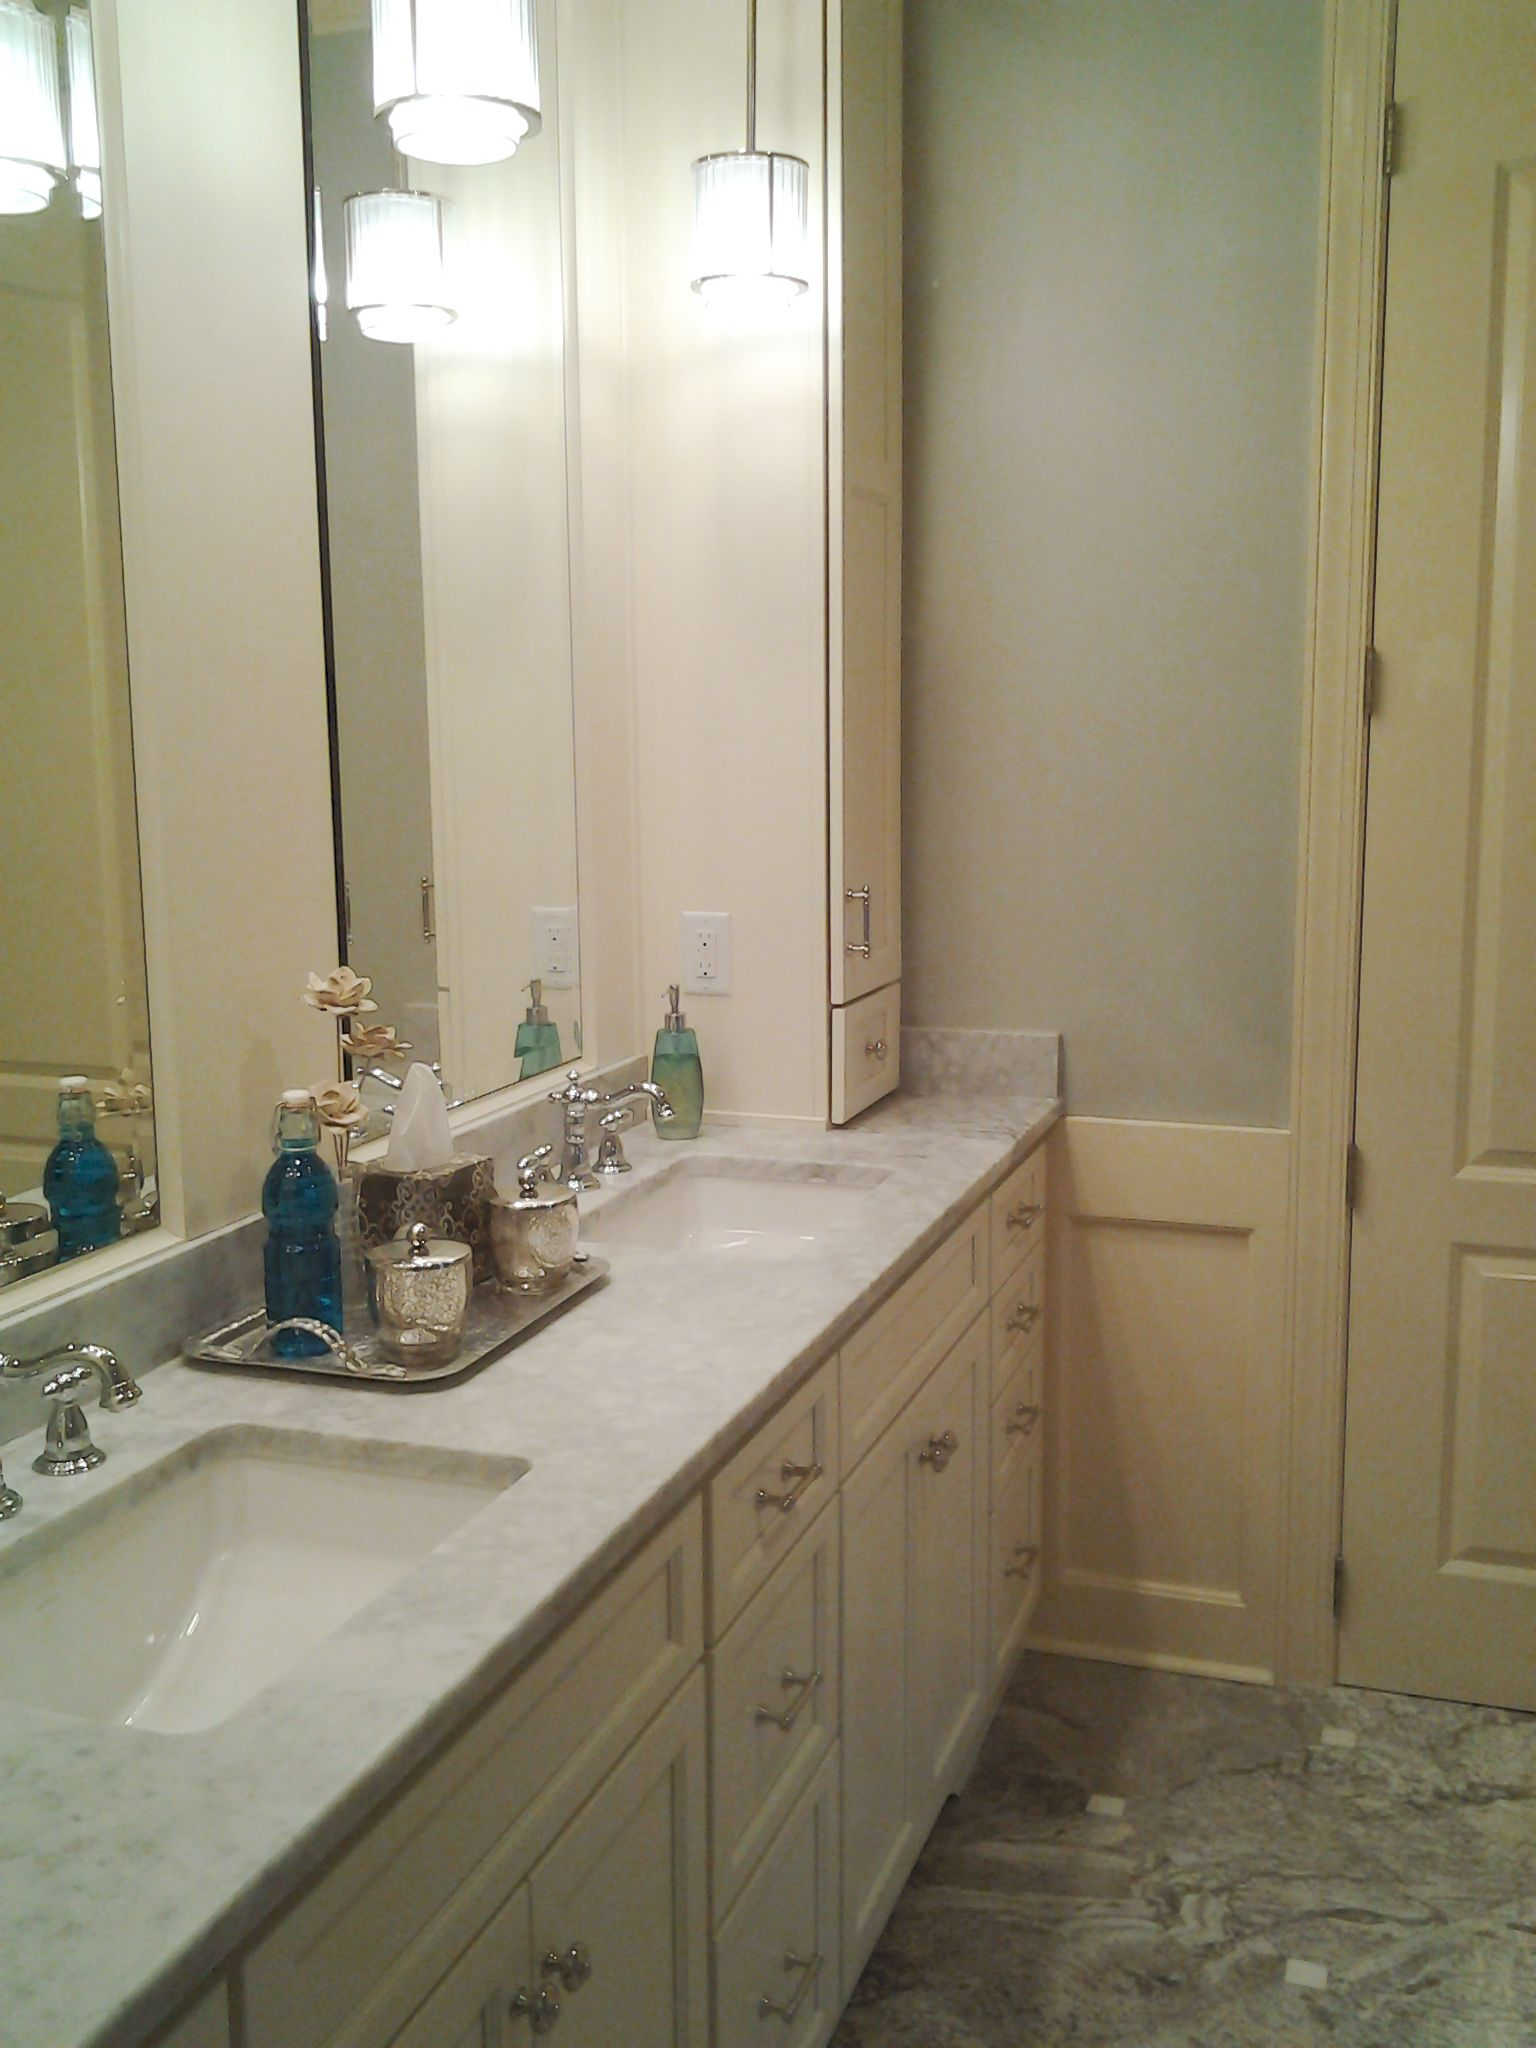 Master Bathroom In Savannah Ga Designed By Mccall Chase Ckd Renovation Work Performed By The Remodeling De Master Bathroom Bathroom Framed Bathroom Mirror